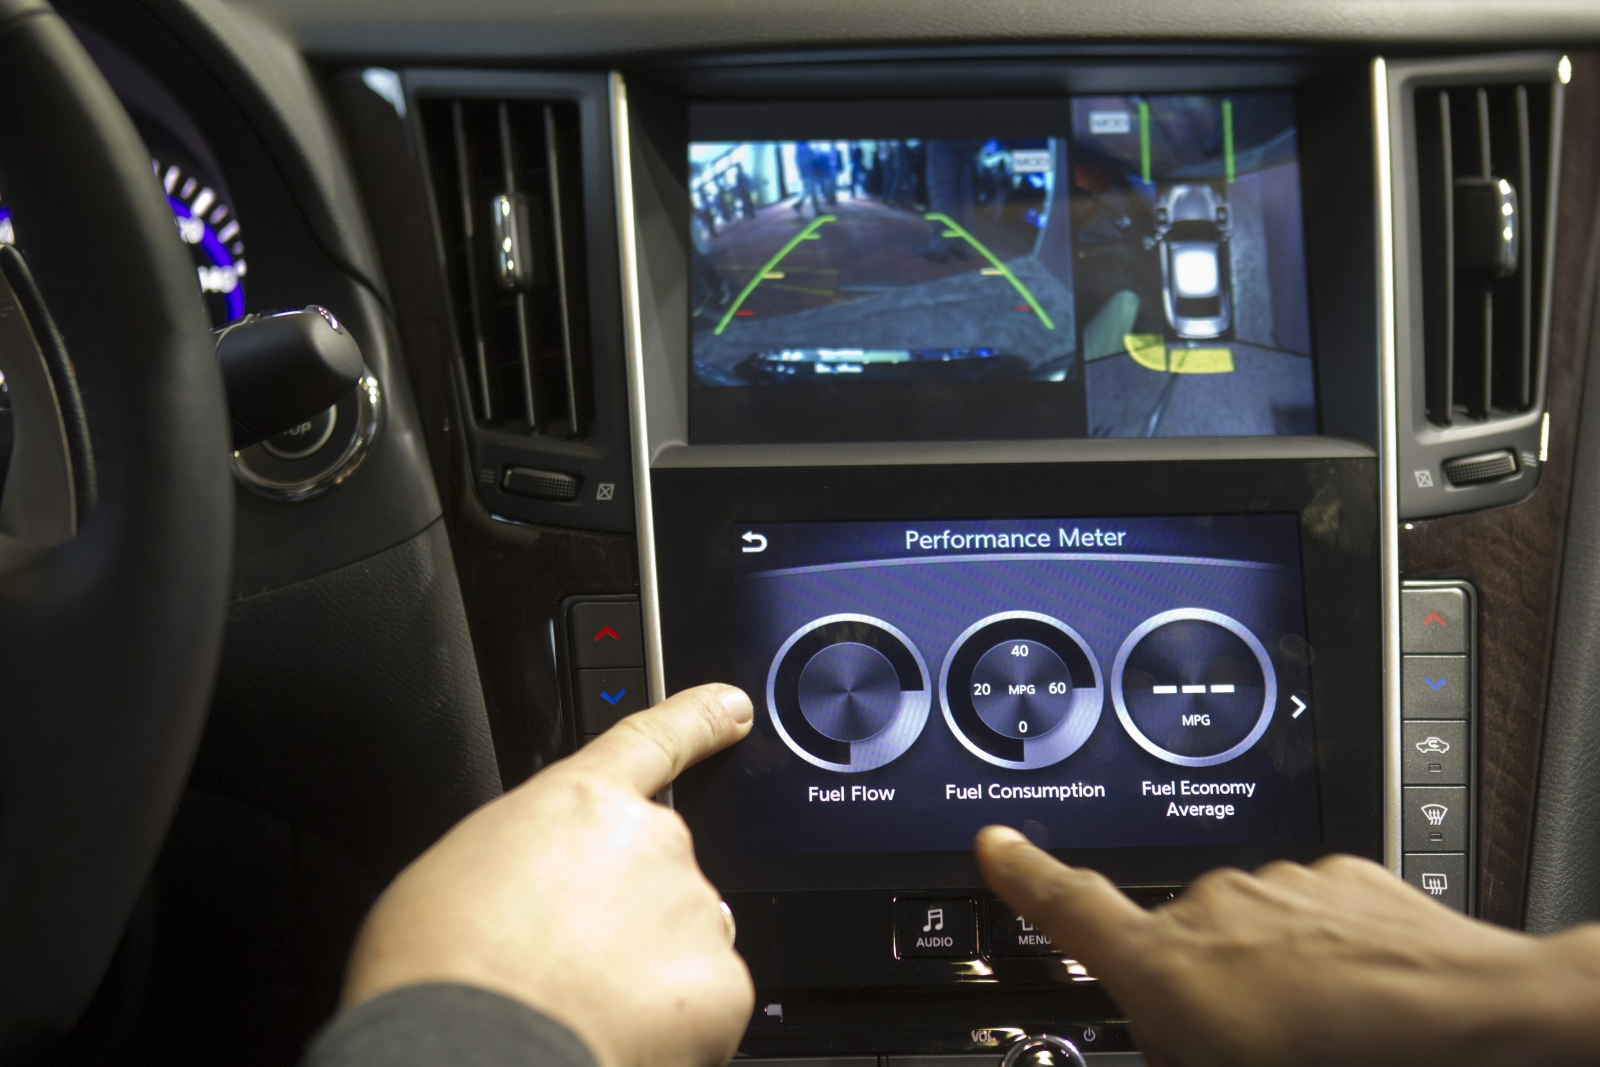 Car infotainment system